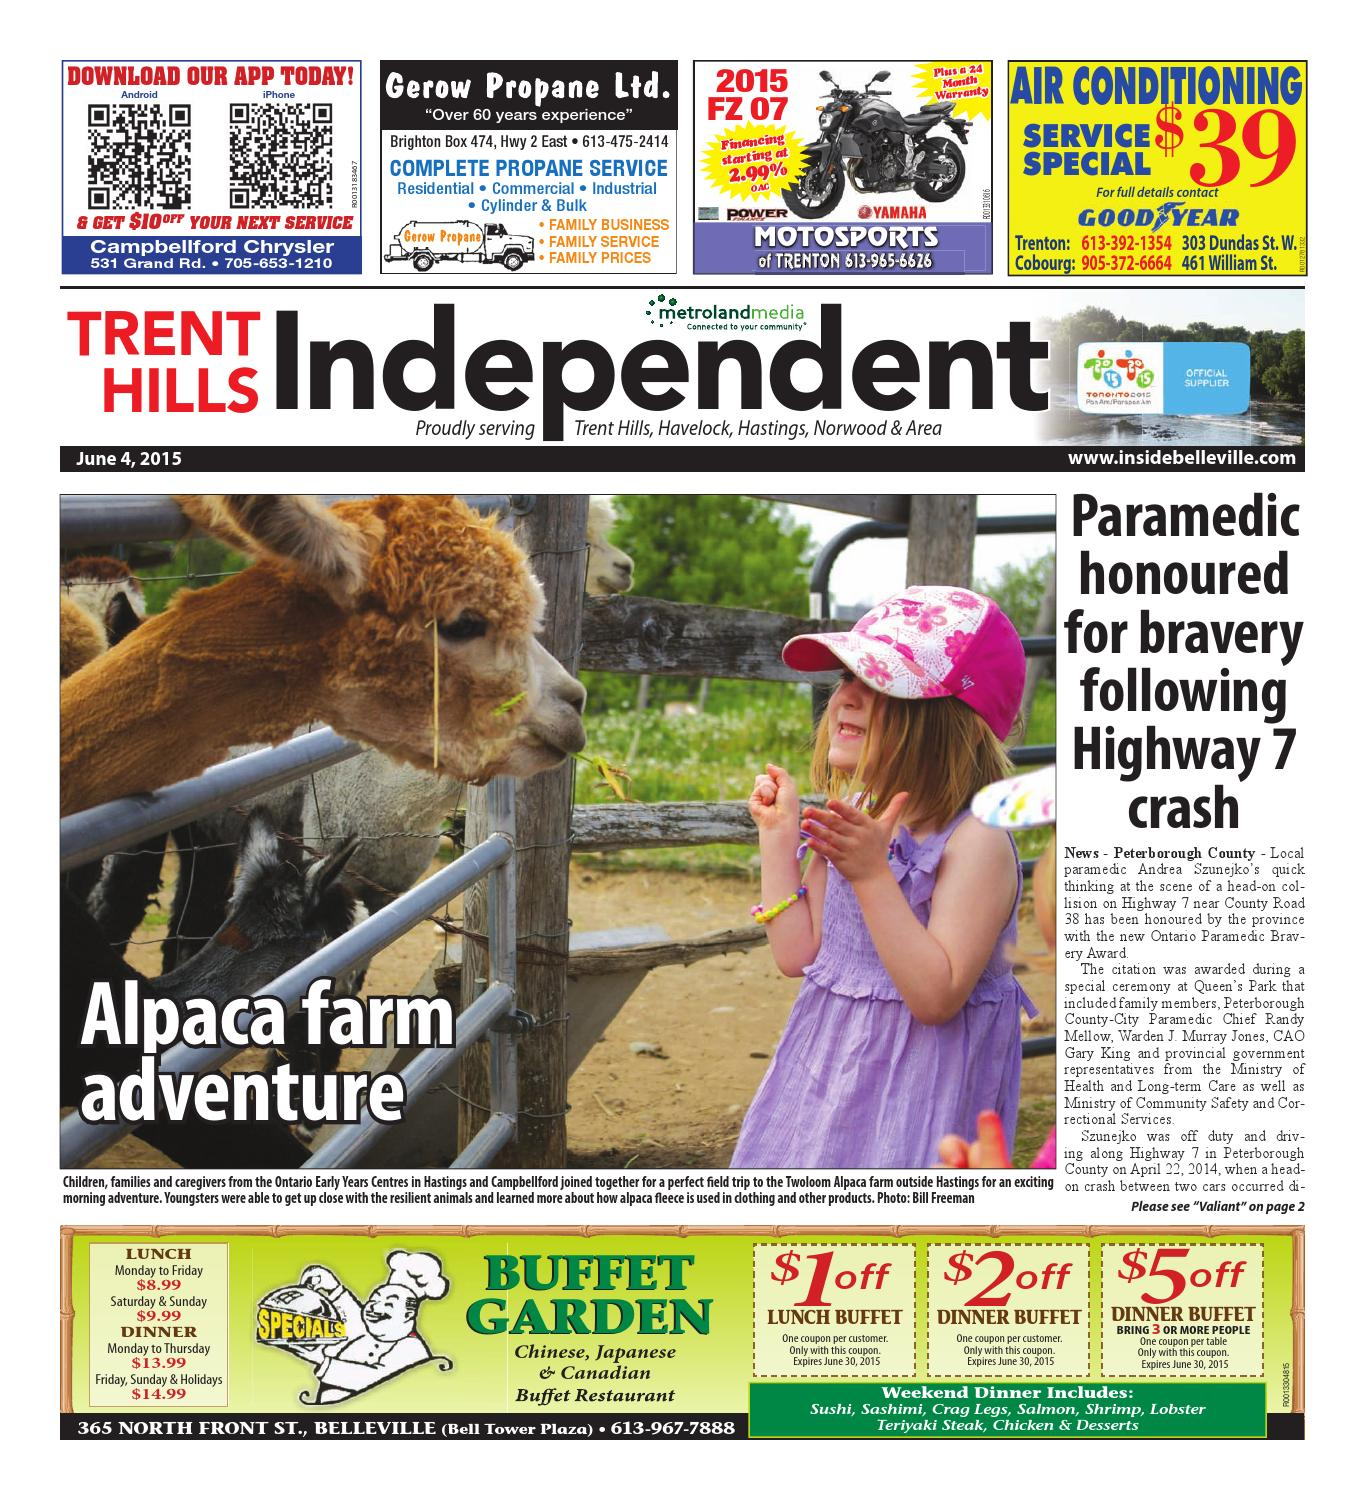 Trenthills by Metroland East Trent Hills Independent issuu